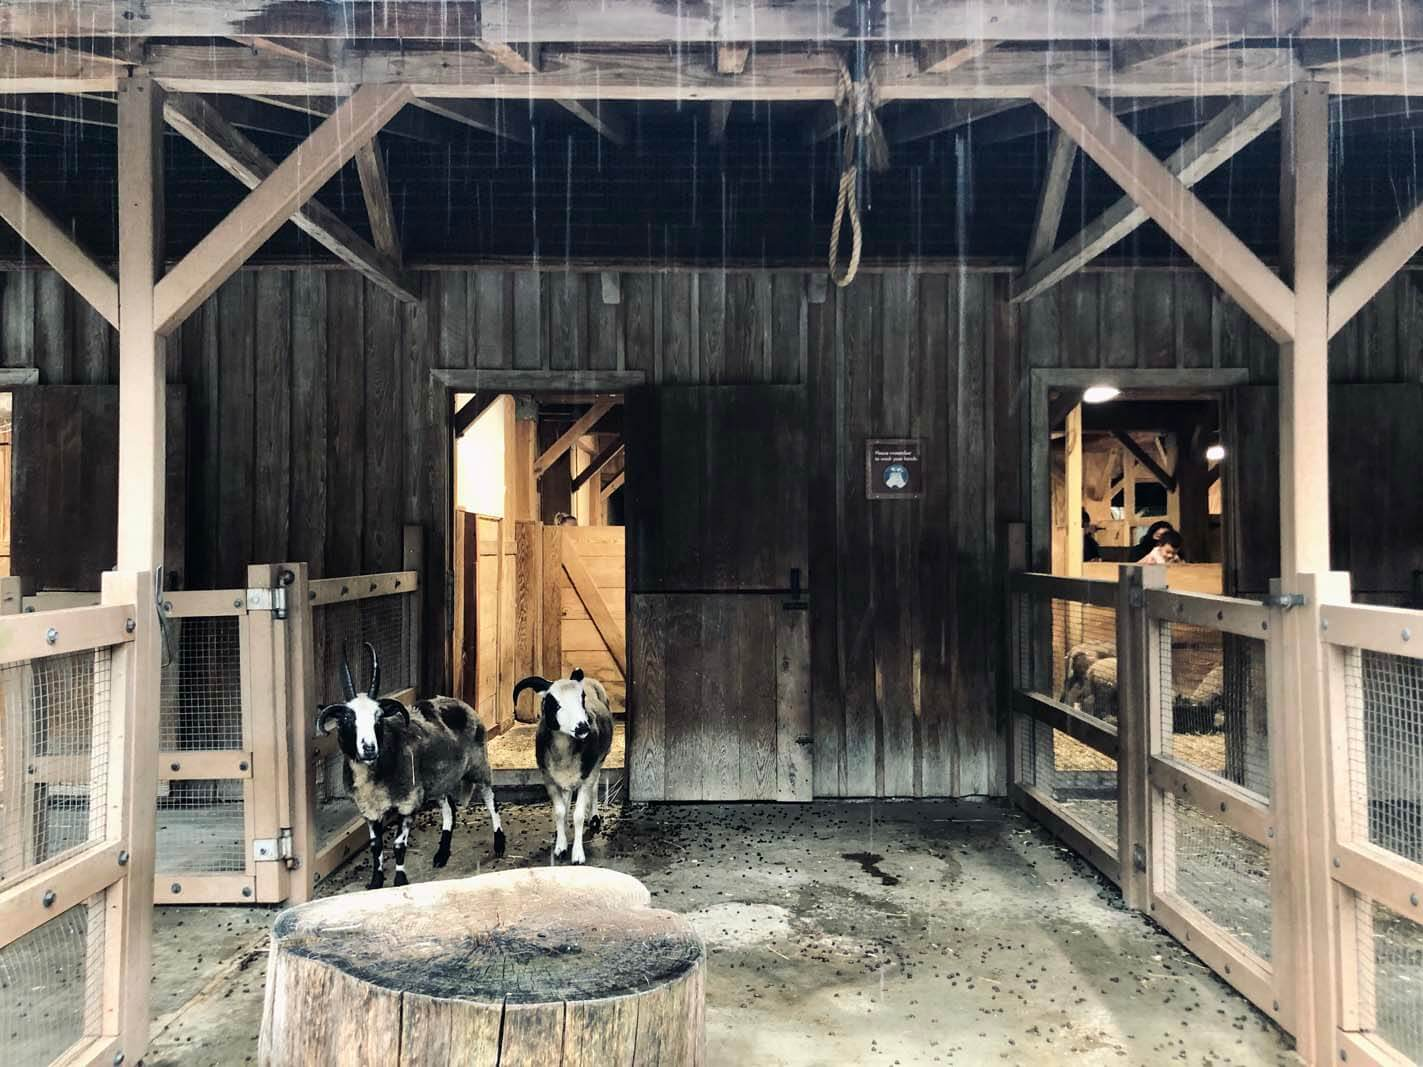 The goats at the Barn and Garden area of the Brooklyn Zoo